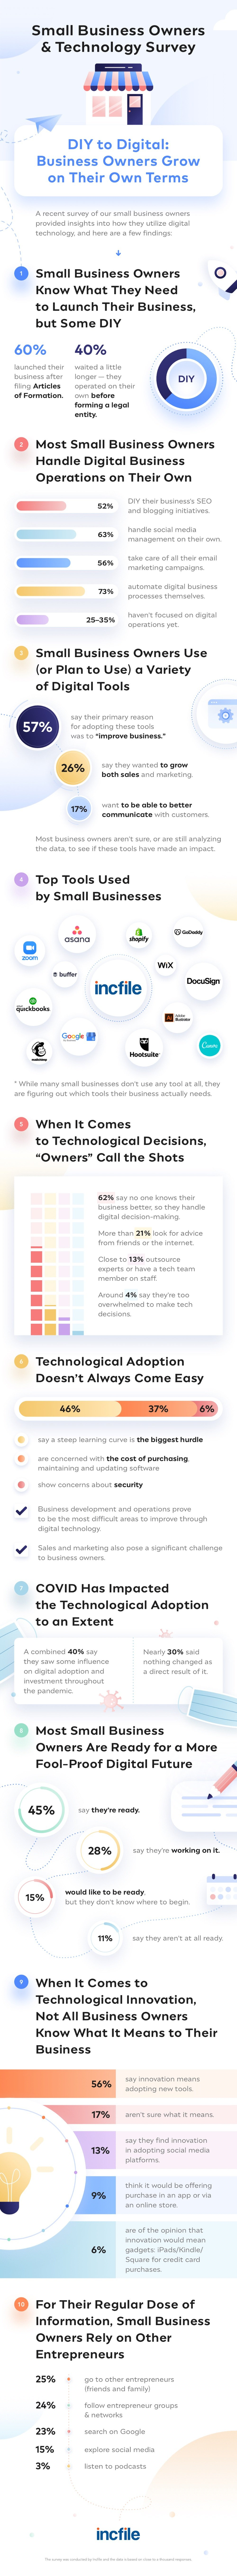 Small Businesses and Digital Adoption